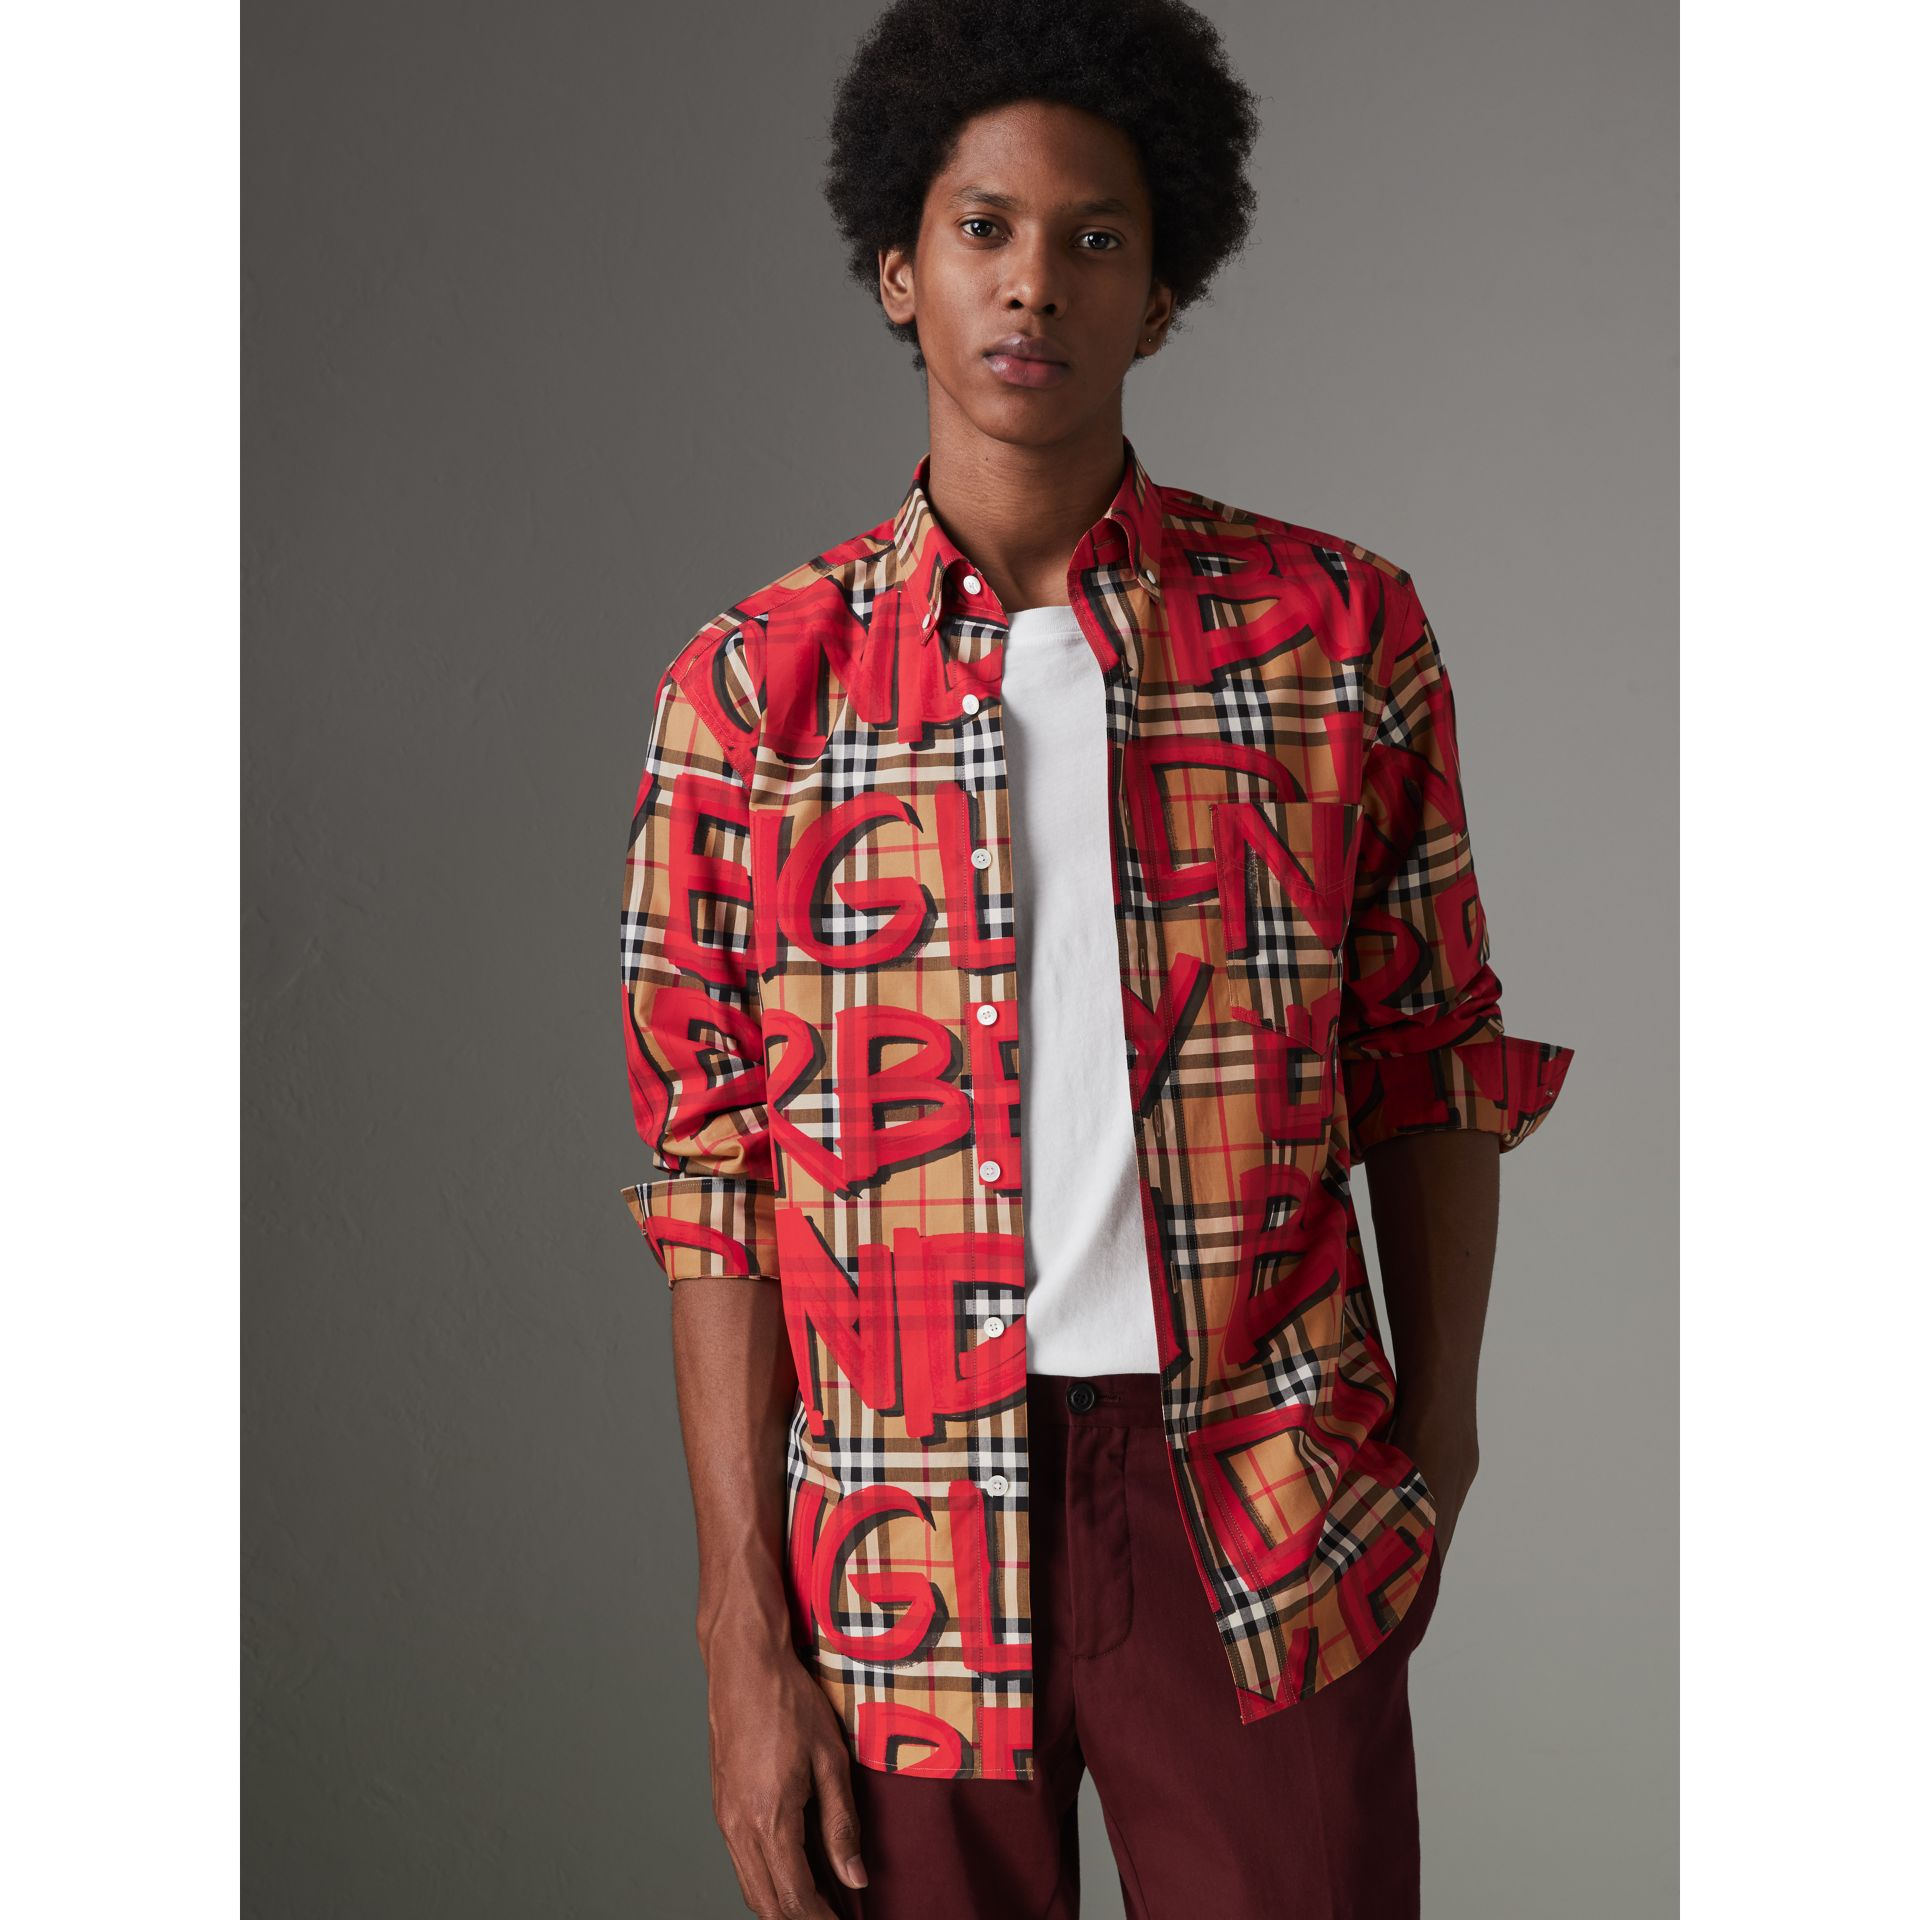 Graffiti Print Vintage Check Shirt in Bright Red - Men | Burberry United Kingdom - gallery image 4